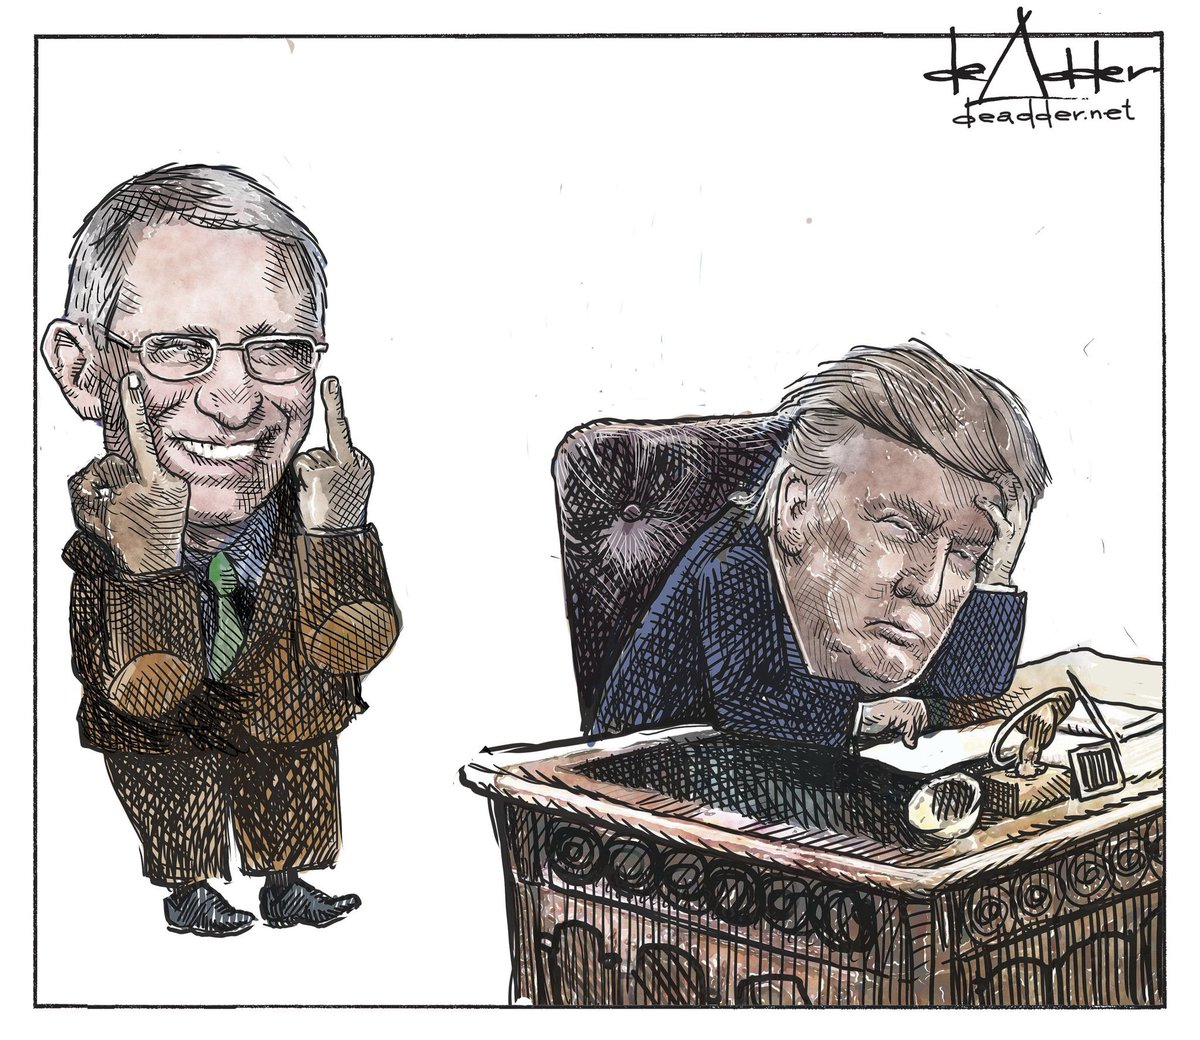 #ThingsImGonnaMissAboutTrump.  @deAdder political cartoons slaying all things Trump.